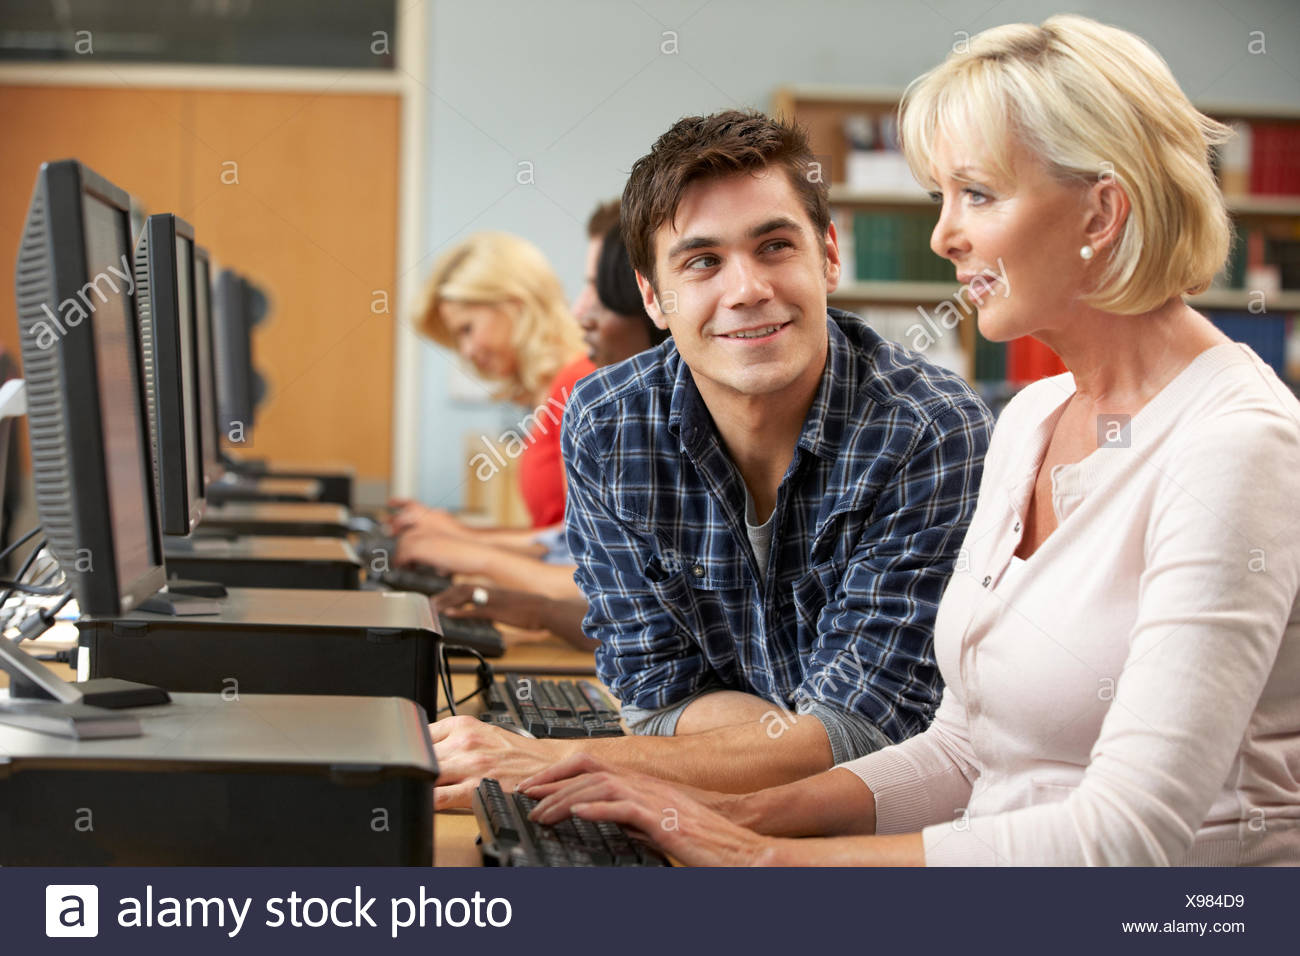 Students working on computers in library - Stock Image